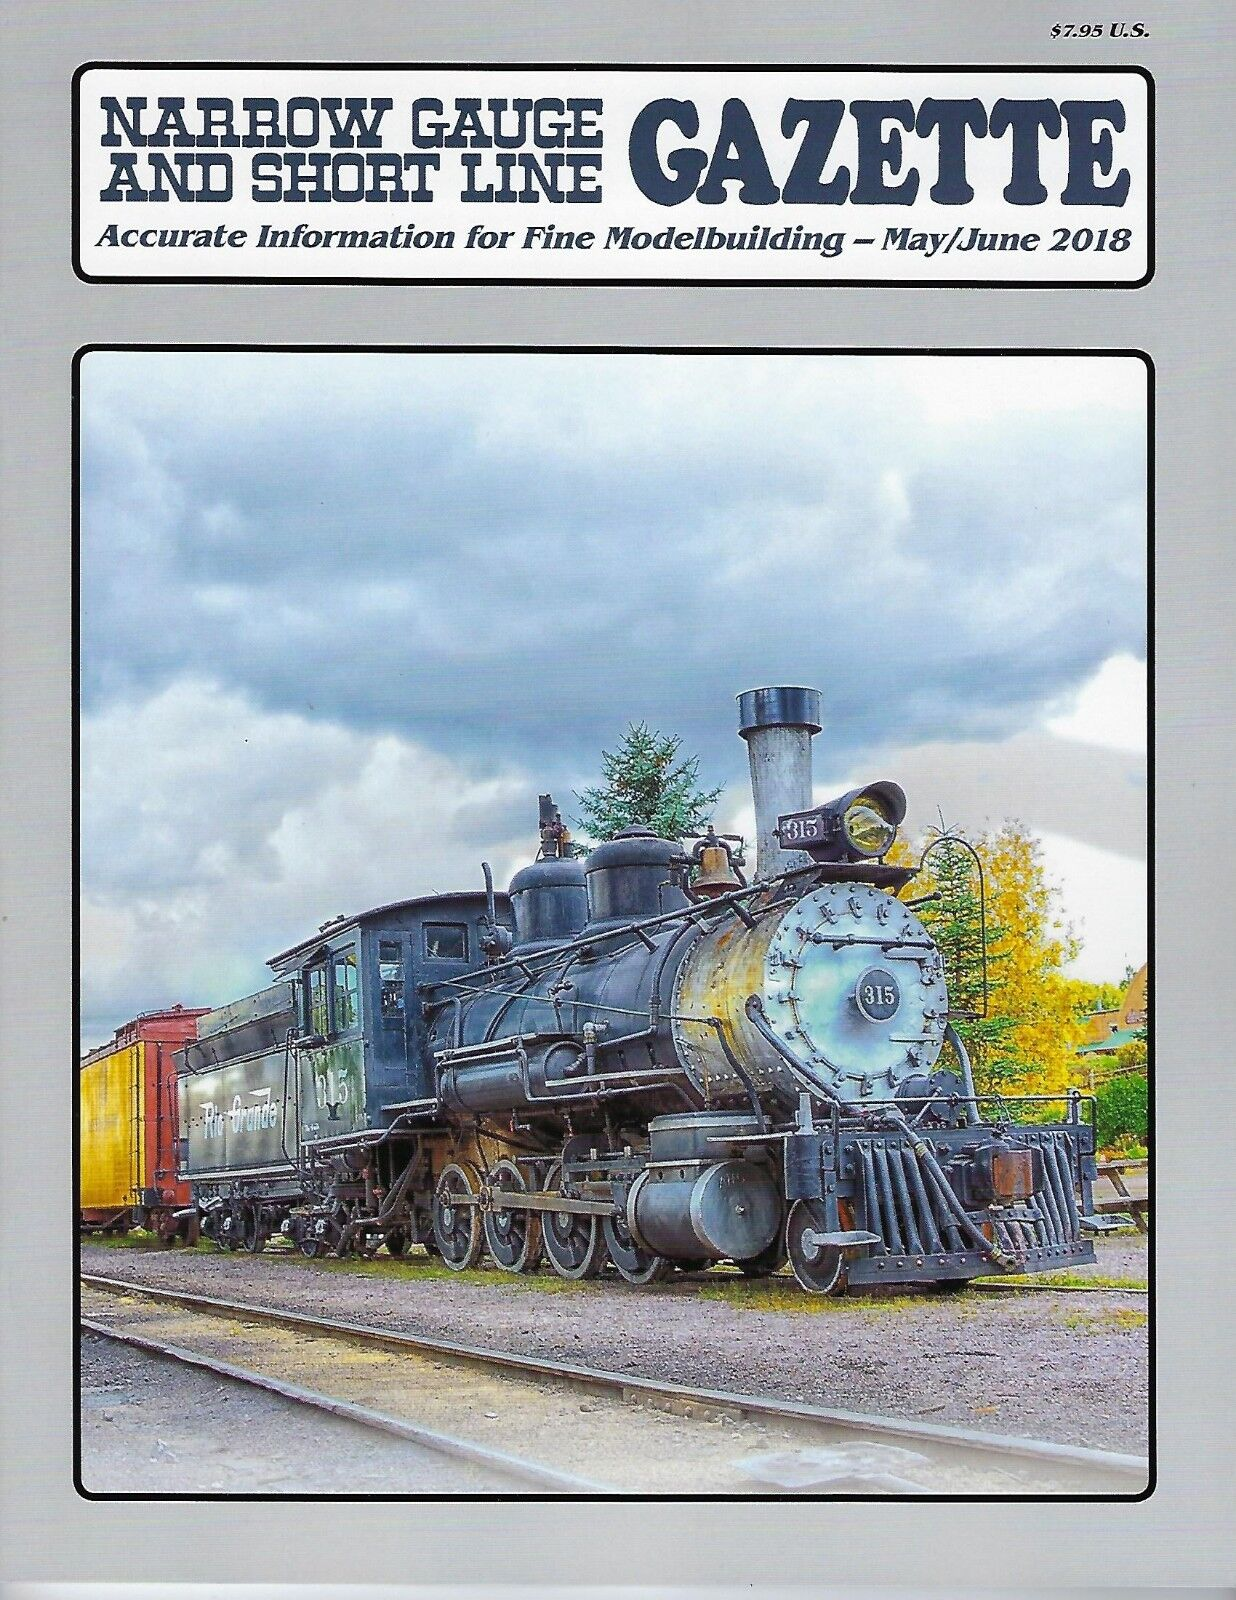 Narrow Gauge and Short Line GAZETTE  May   June 2018 -- (BRAND NEW issue)